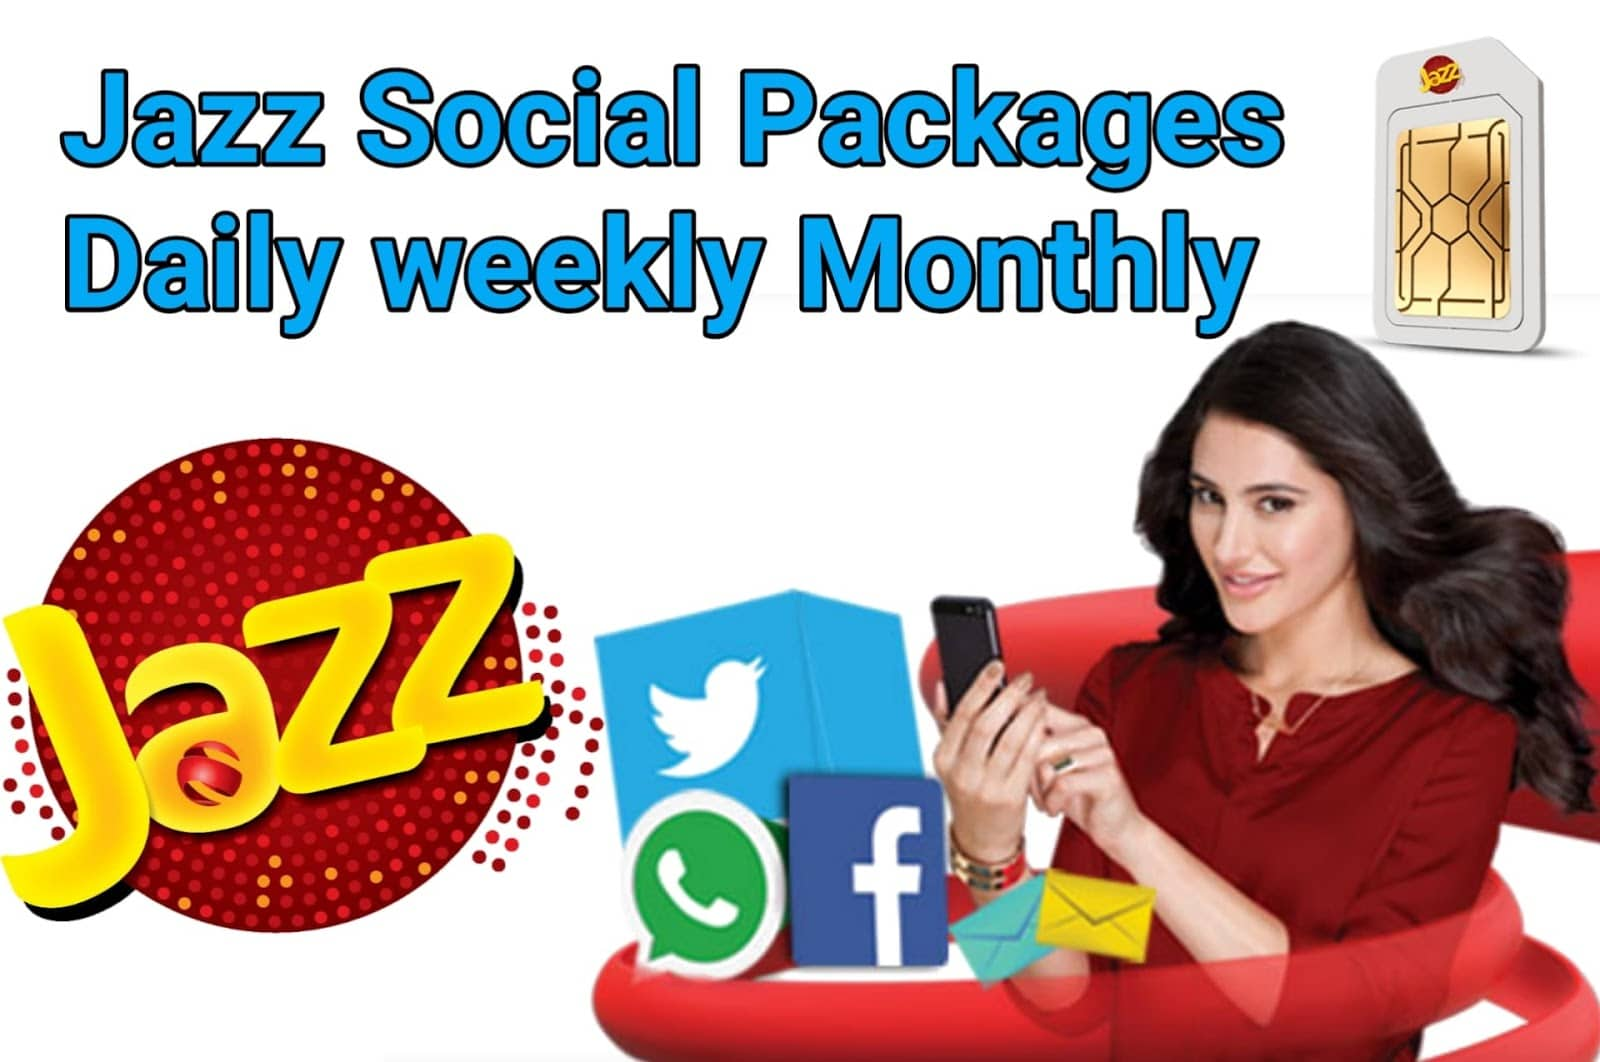 Jazz-Facebook-Packages-2021-Daily-Weekly-Monthly-Offers